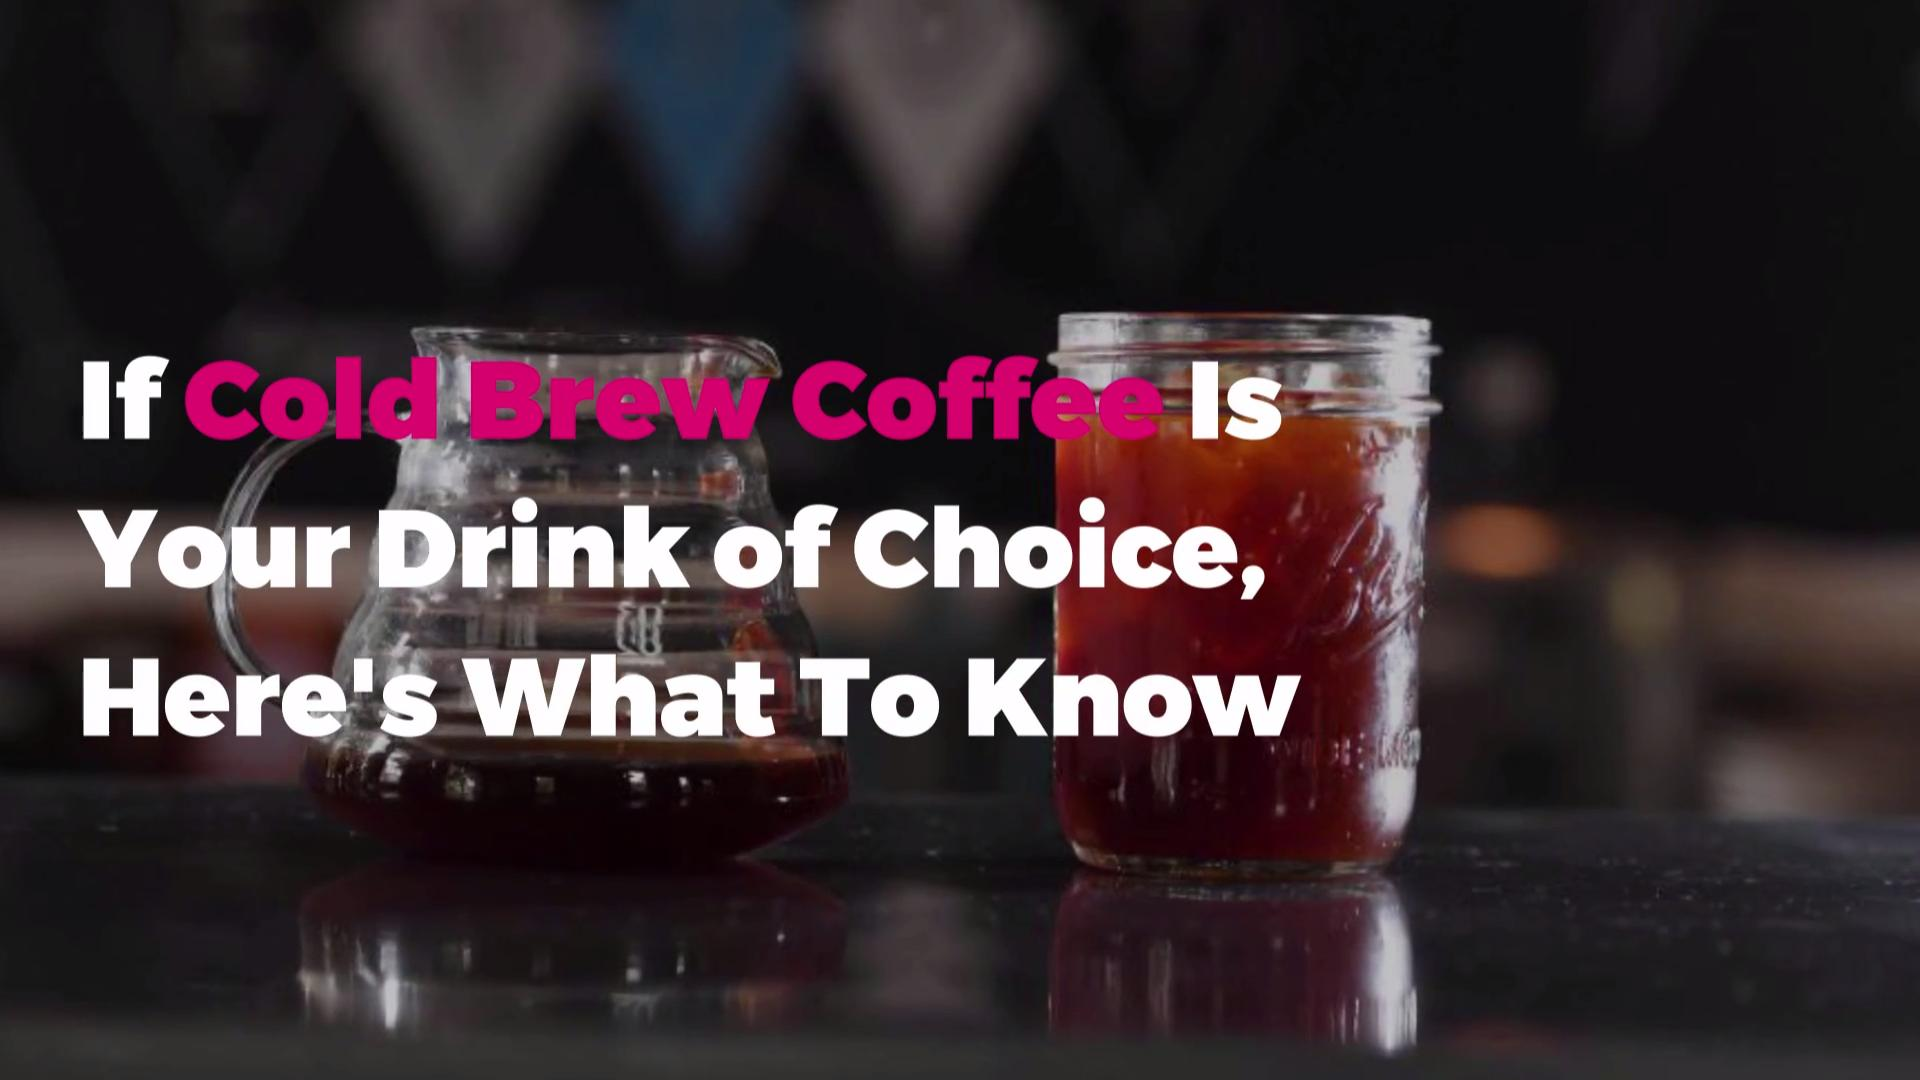 If Cold Brew Coffee Is Your Caffeinated Drink of Choice, Here's What